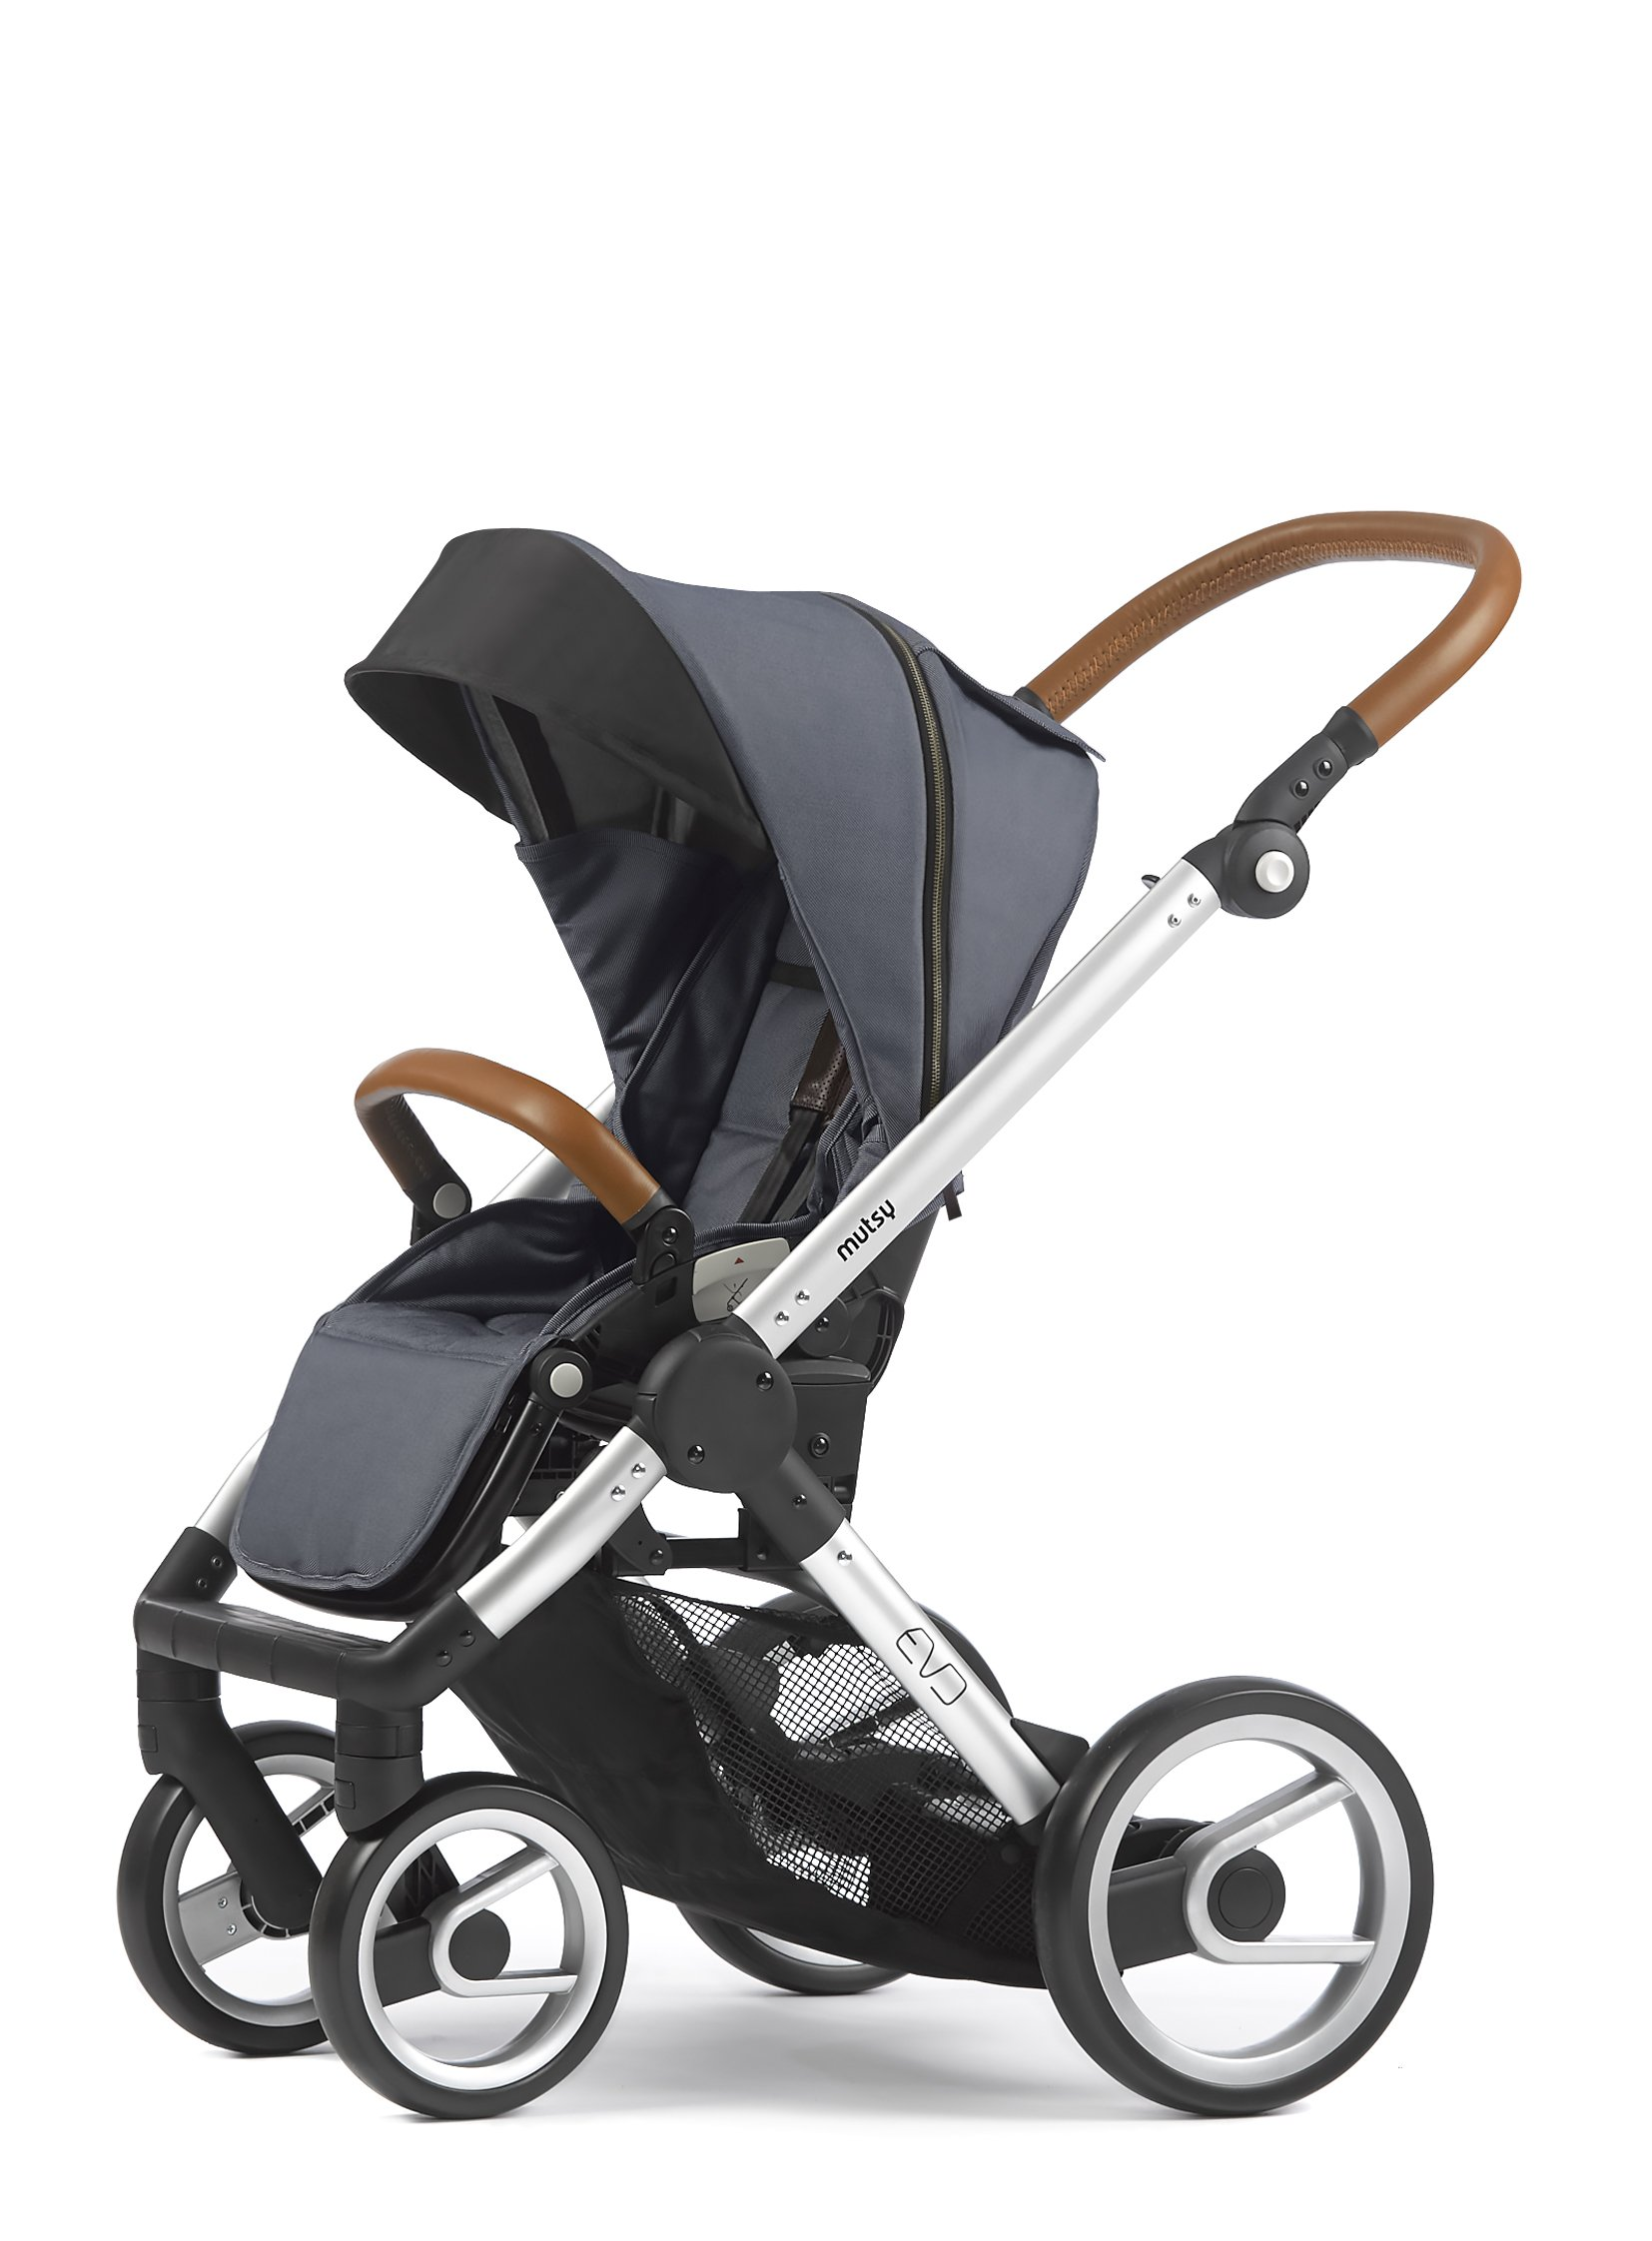 Mutsy Evo Industrial Edition Stroller, Grey with Silver Chassis